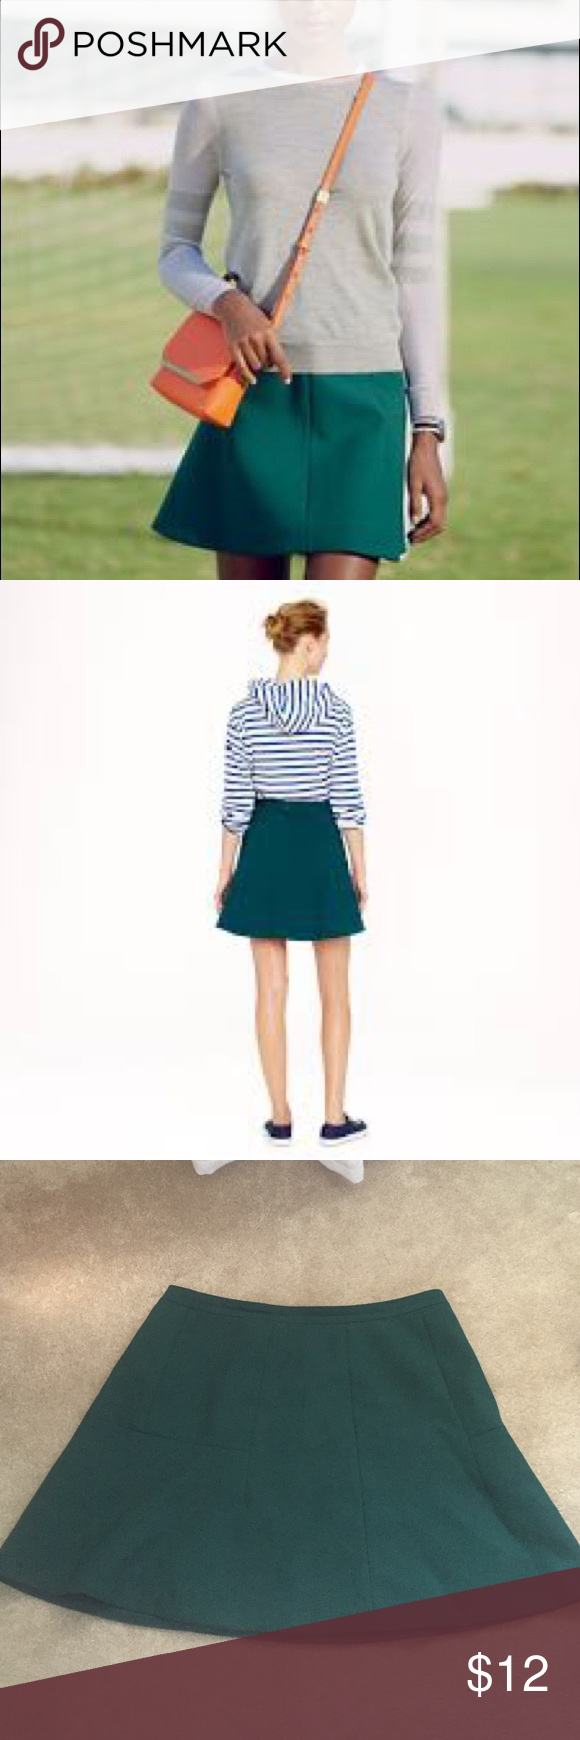 J.Crew Green Fluted Skirt in Double Crepe Classic fluted skirt in double crepe, gorgeous fir green color is perfect for fall! J. Crew Skirts Mini